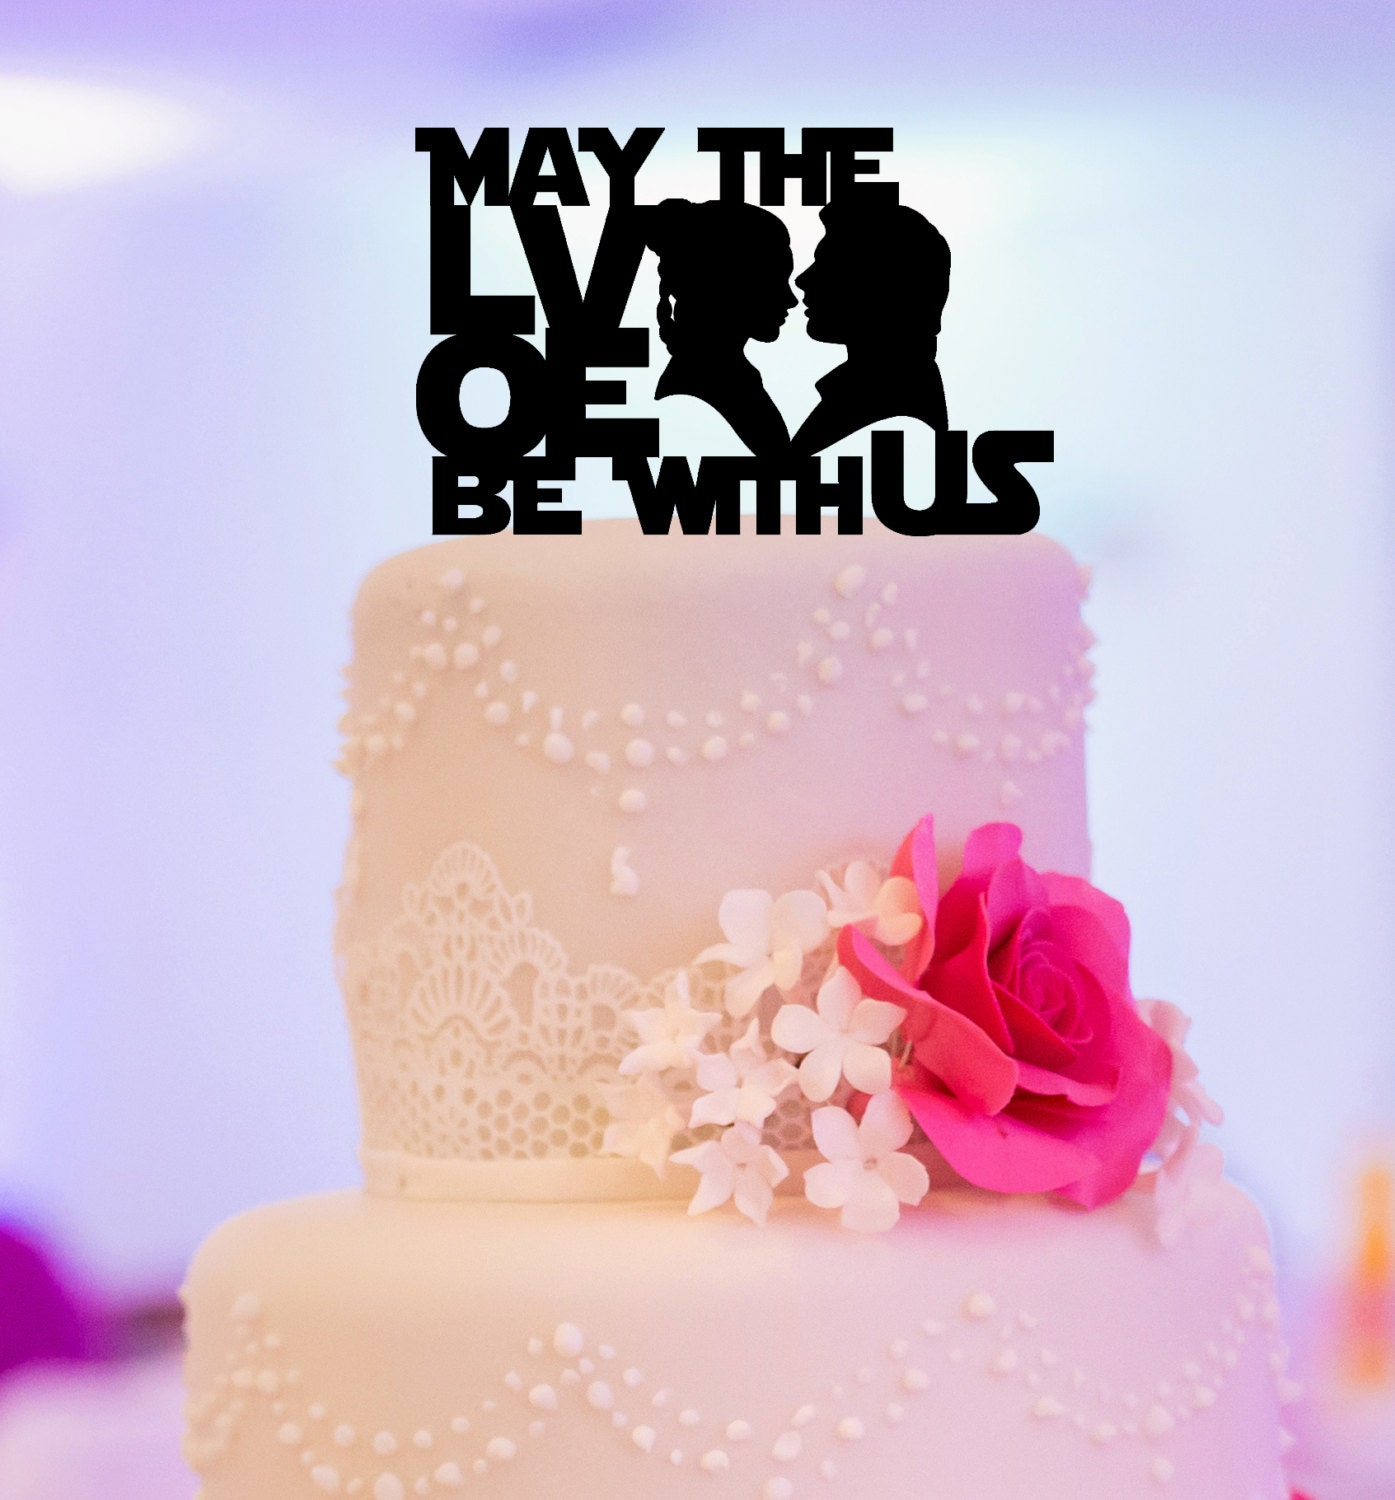 Star wars inspired wedding cake topper may the love be with zoom junglespirit Gallery